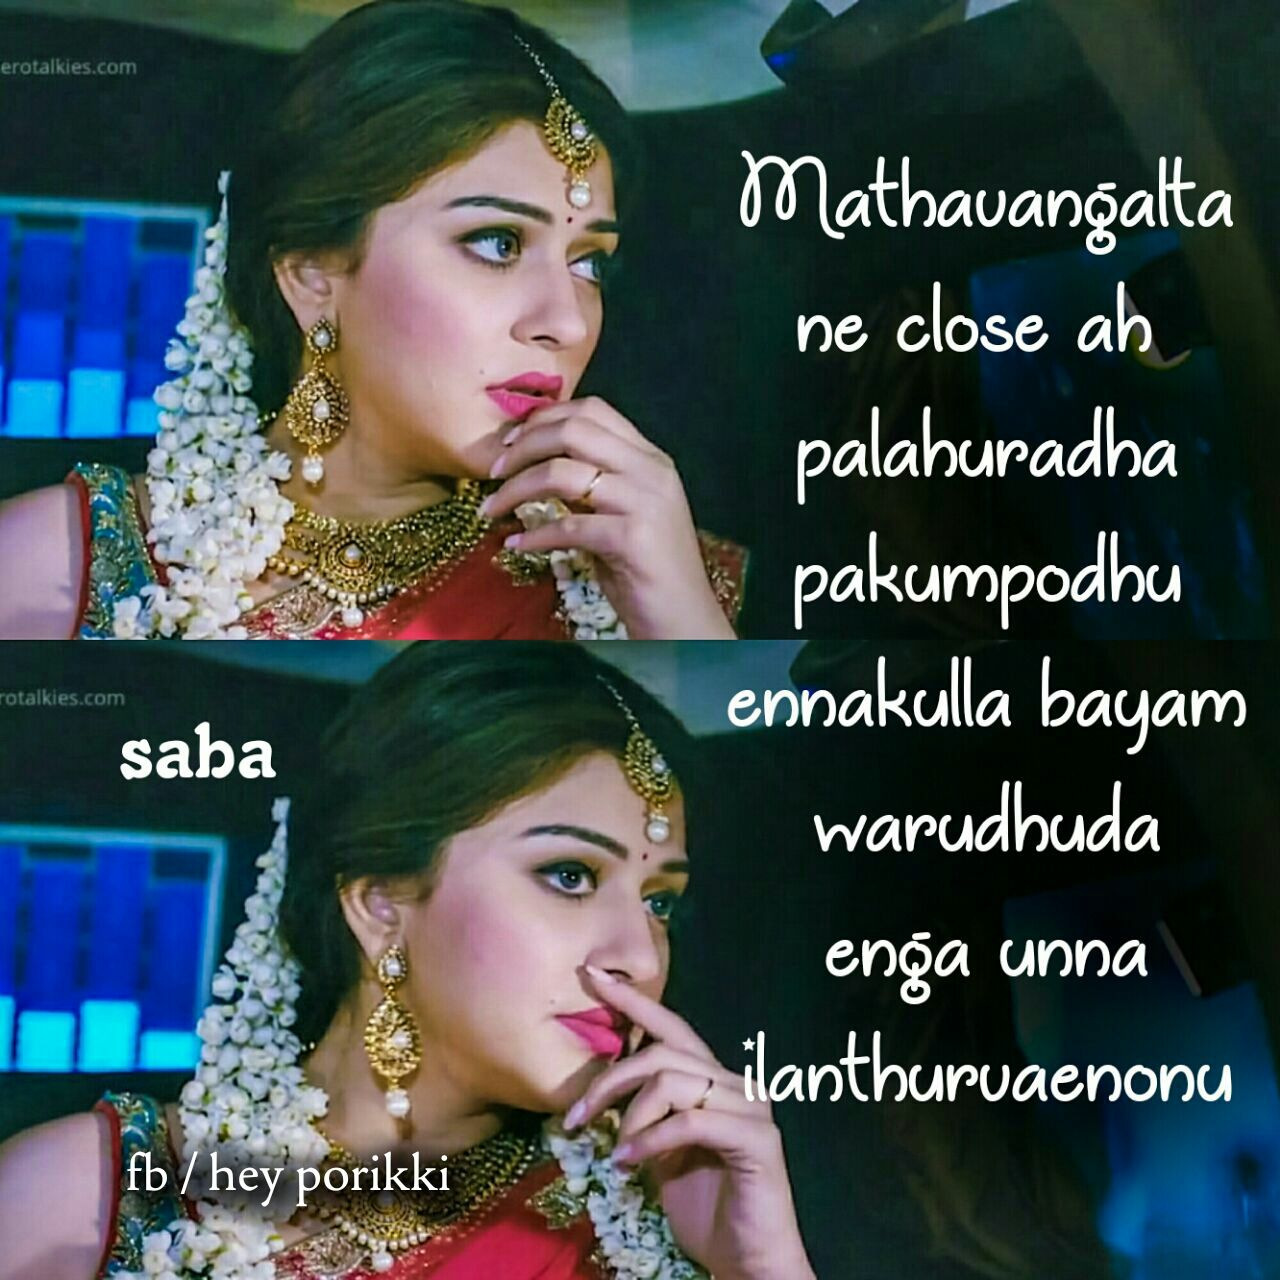 Tamil love quotes image by Shamamie Shamamie on sweety